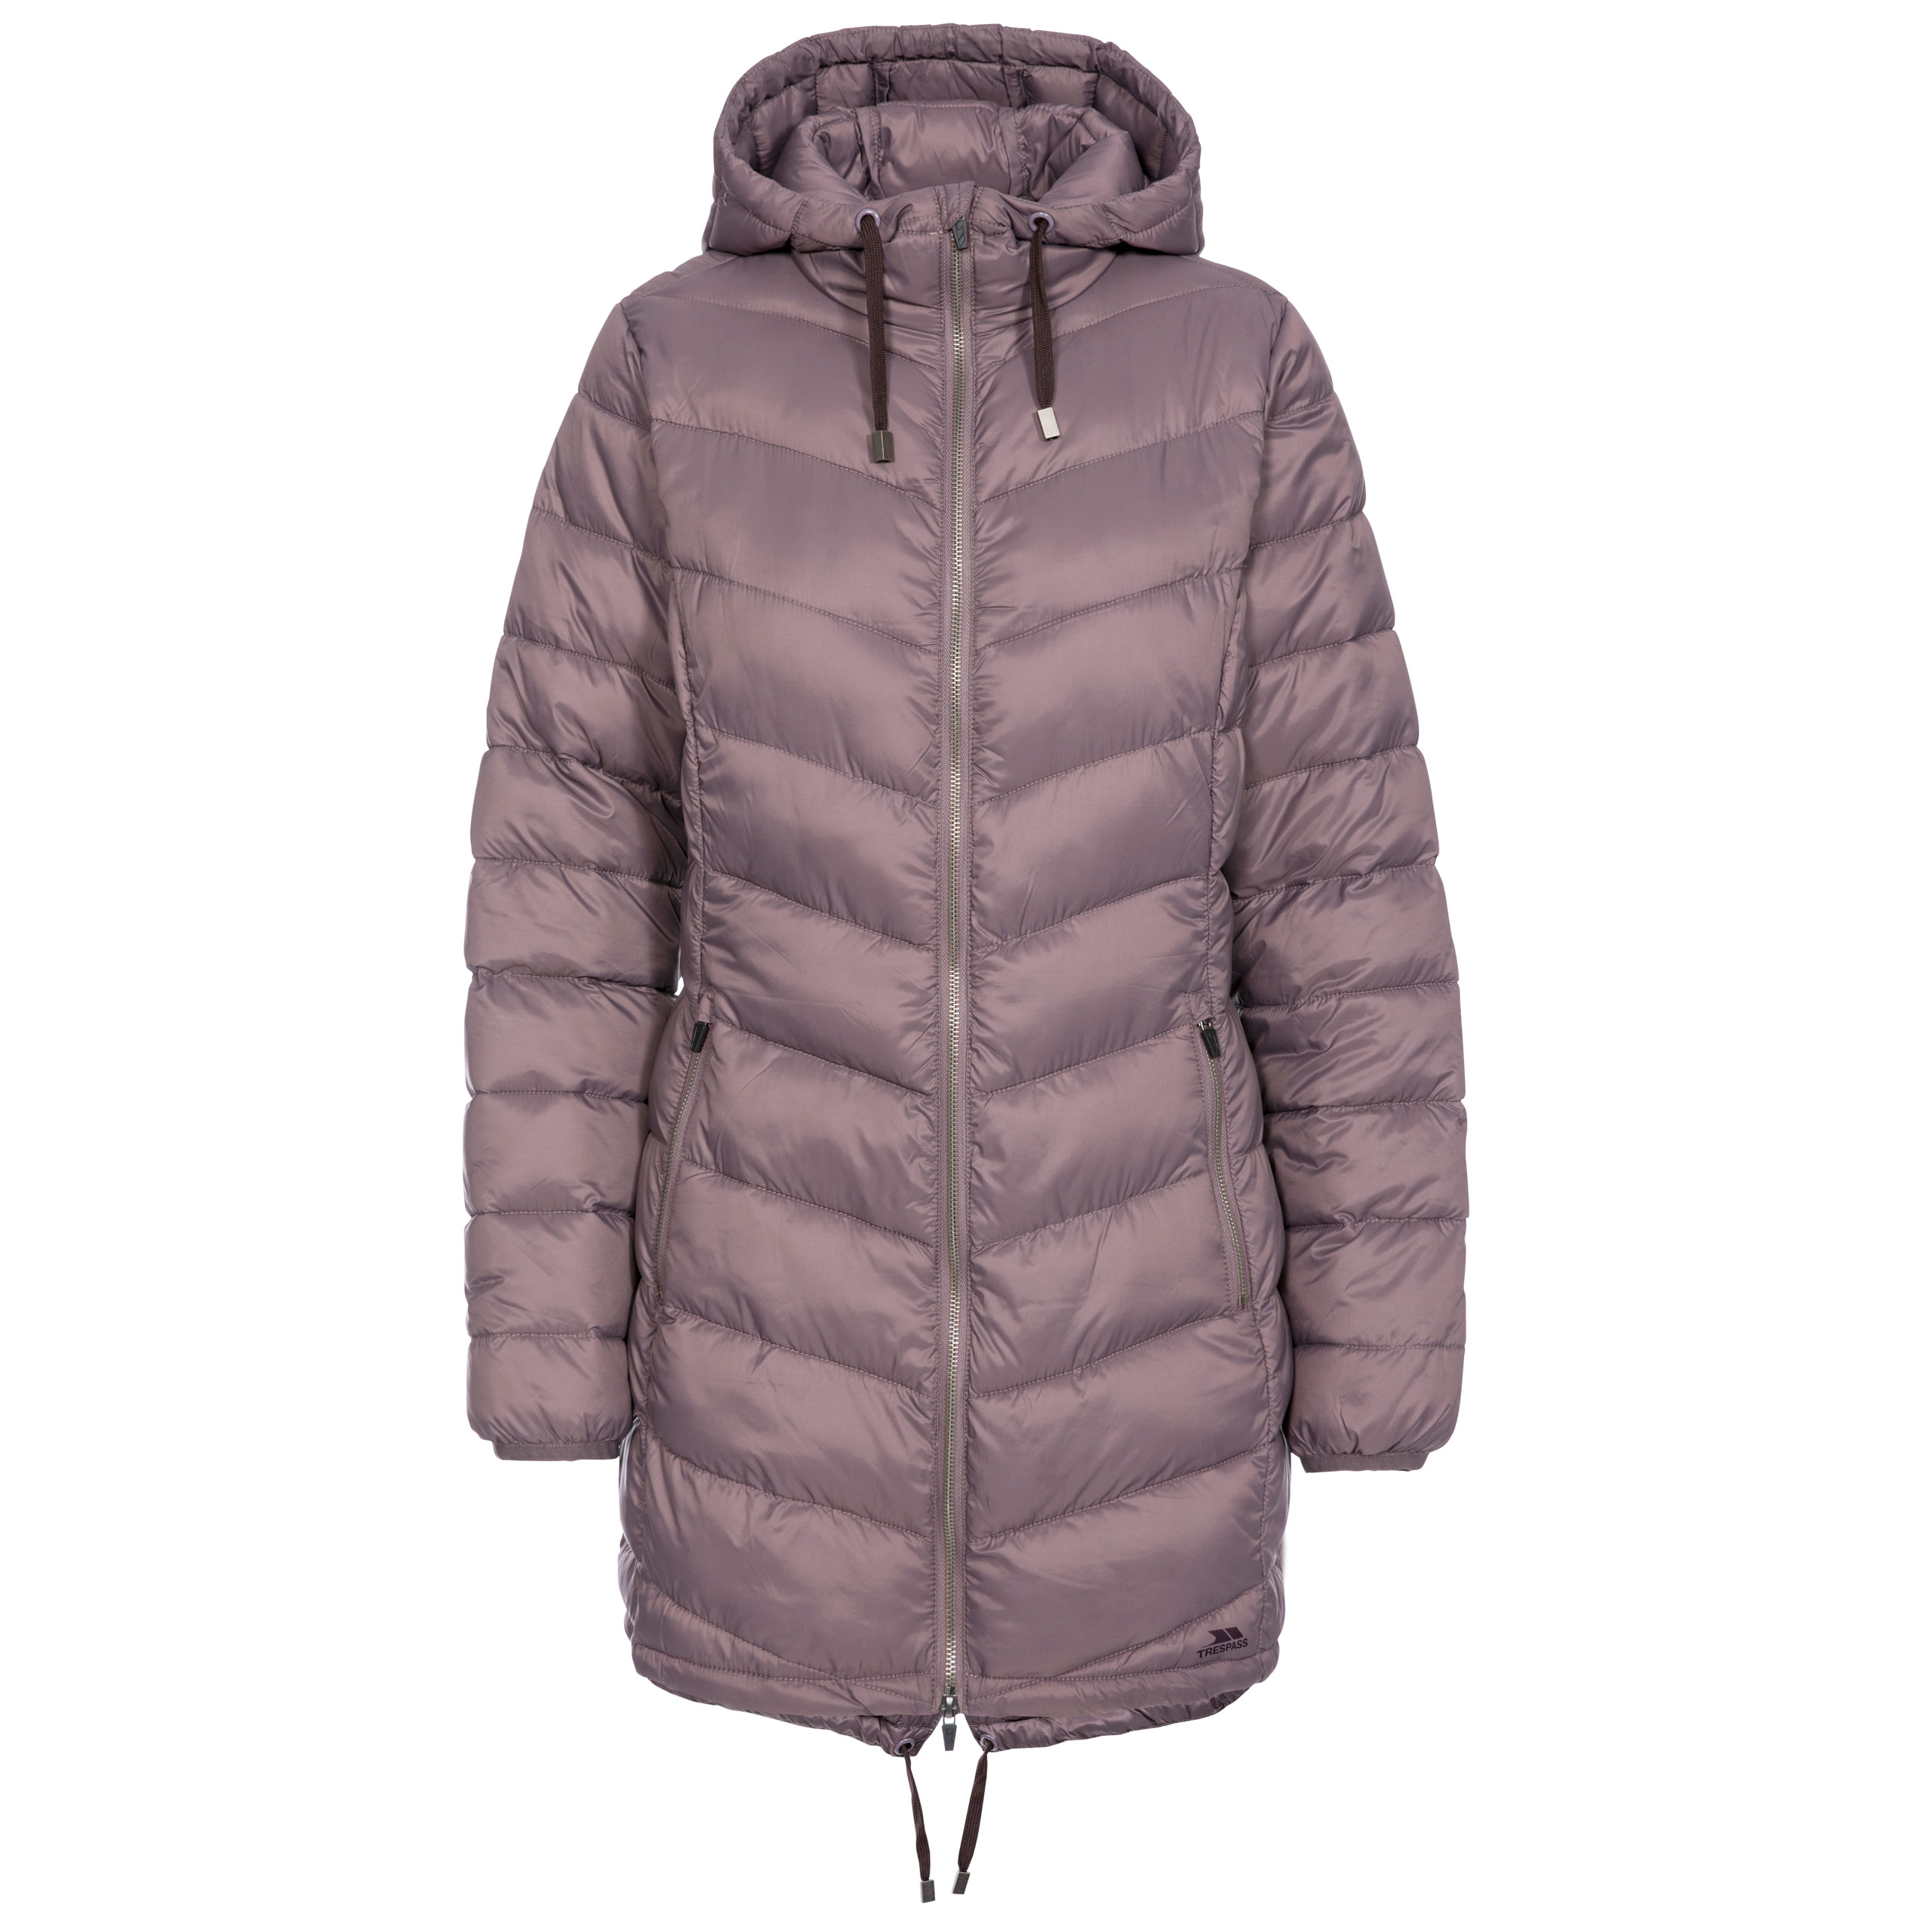 Trespass-Rianna-Womens-Padded-Jacket-Puffer-Coat-With-Hood-For-Ladies thumbnail 17